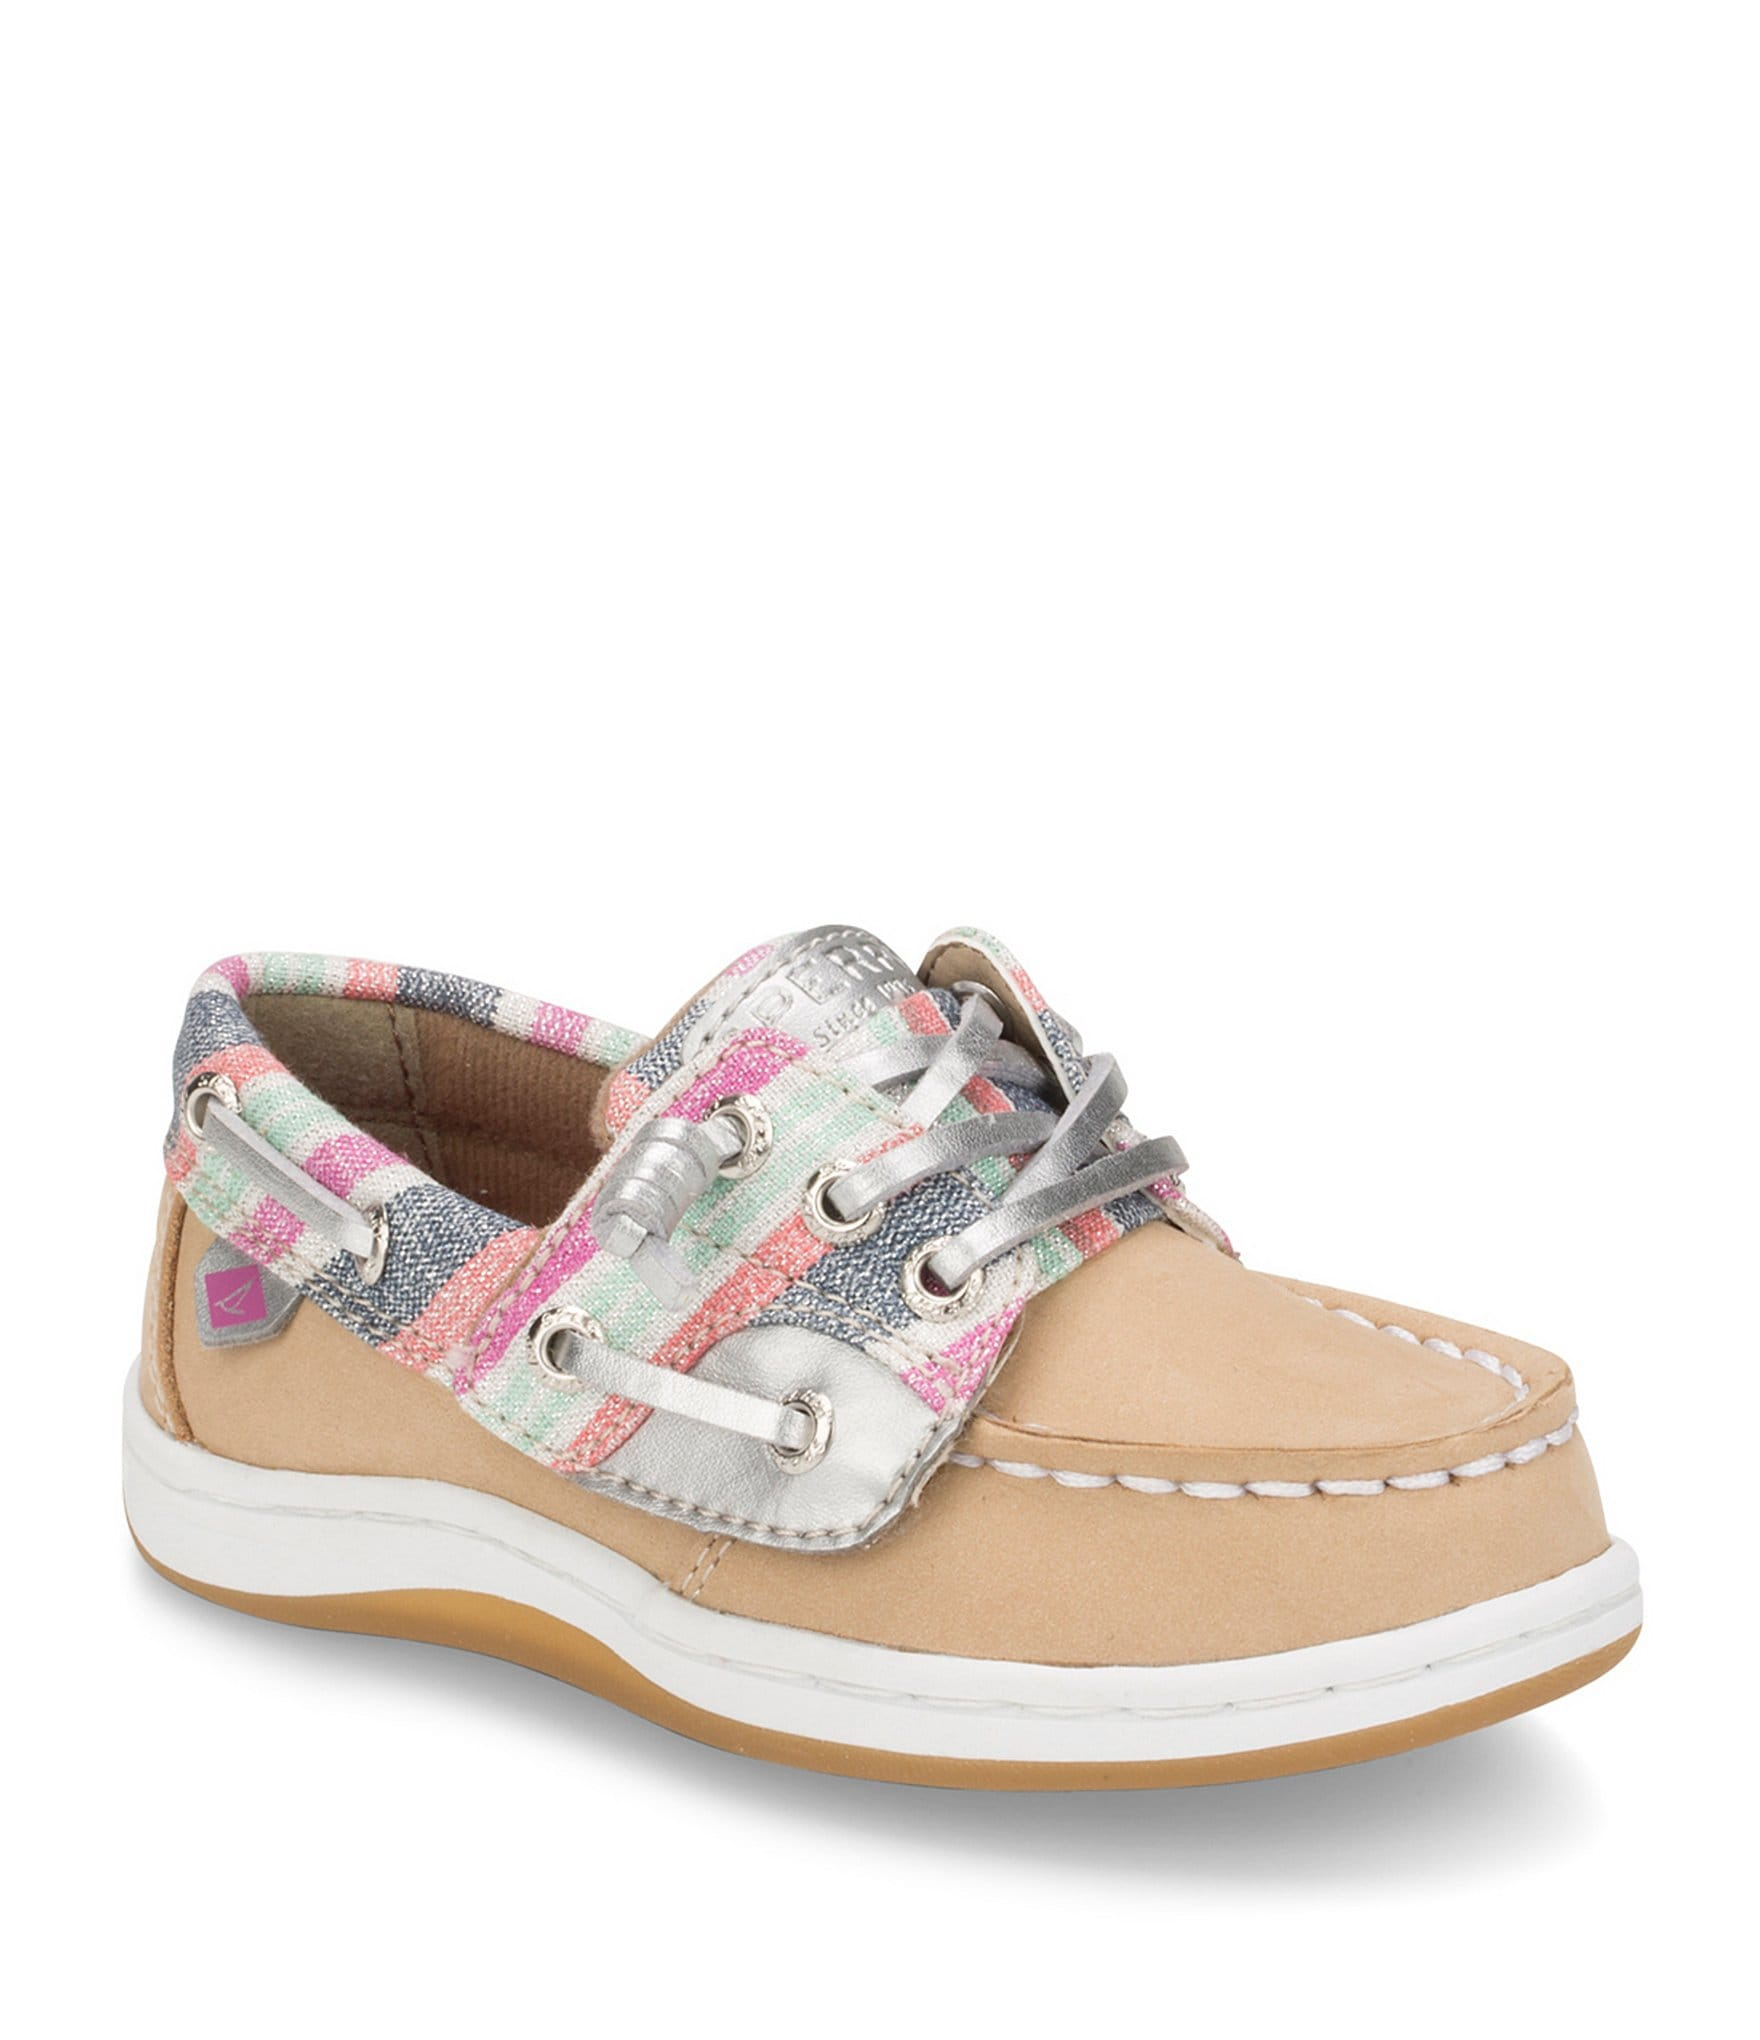 Sperry Infant Girls Shoes